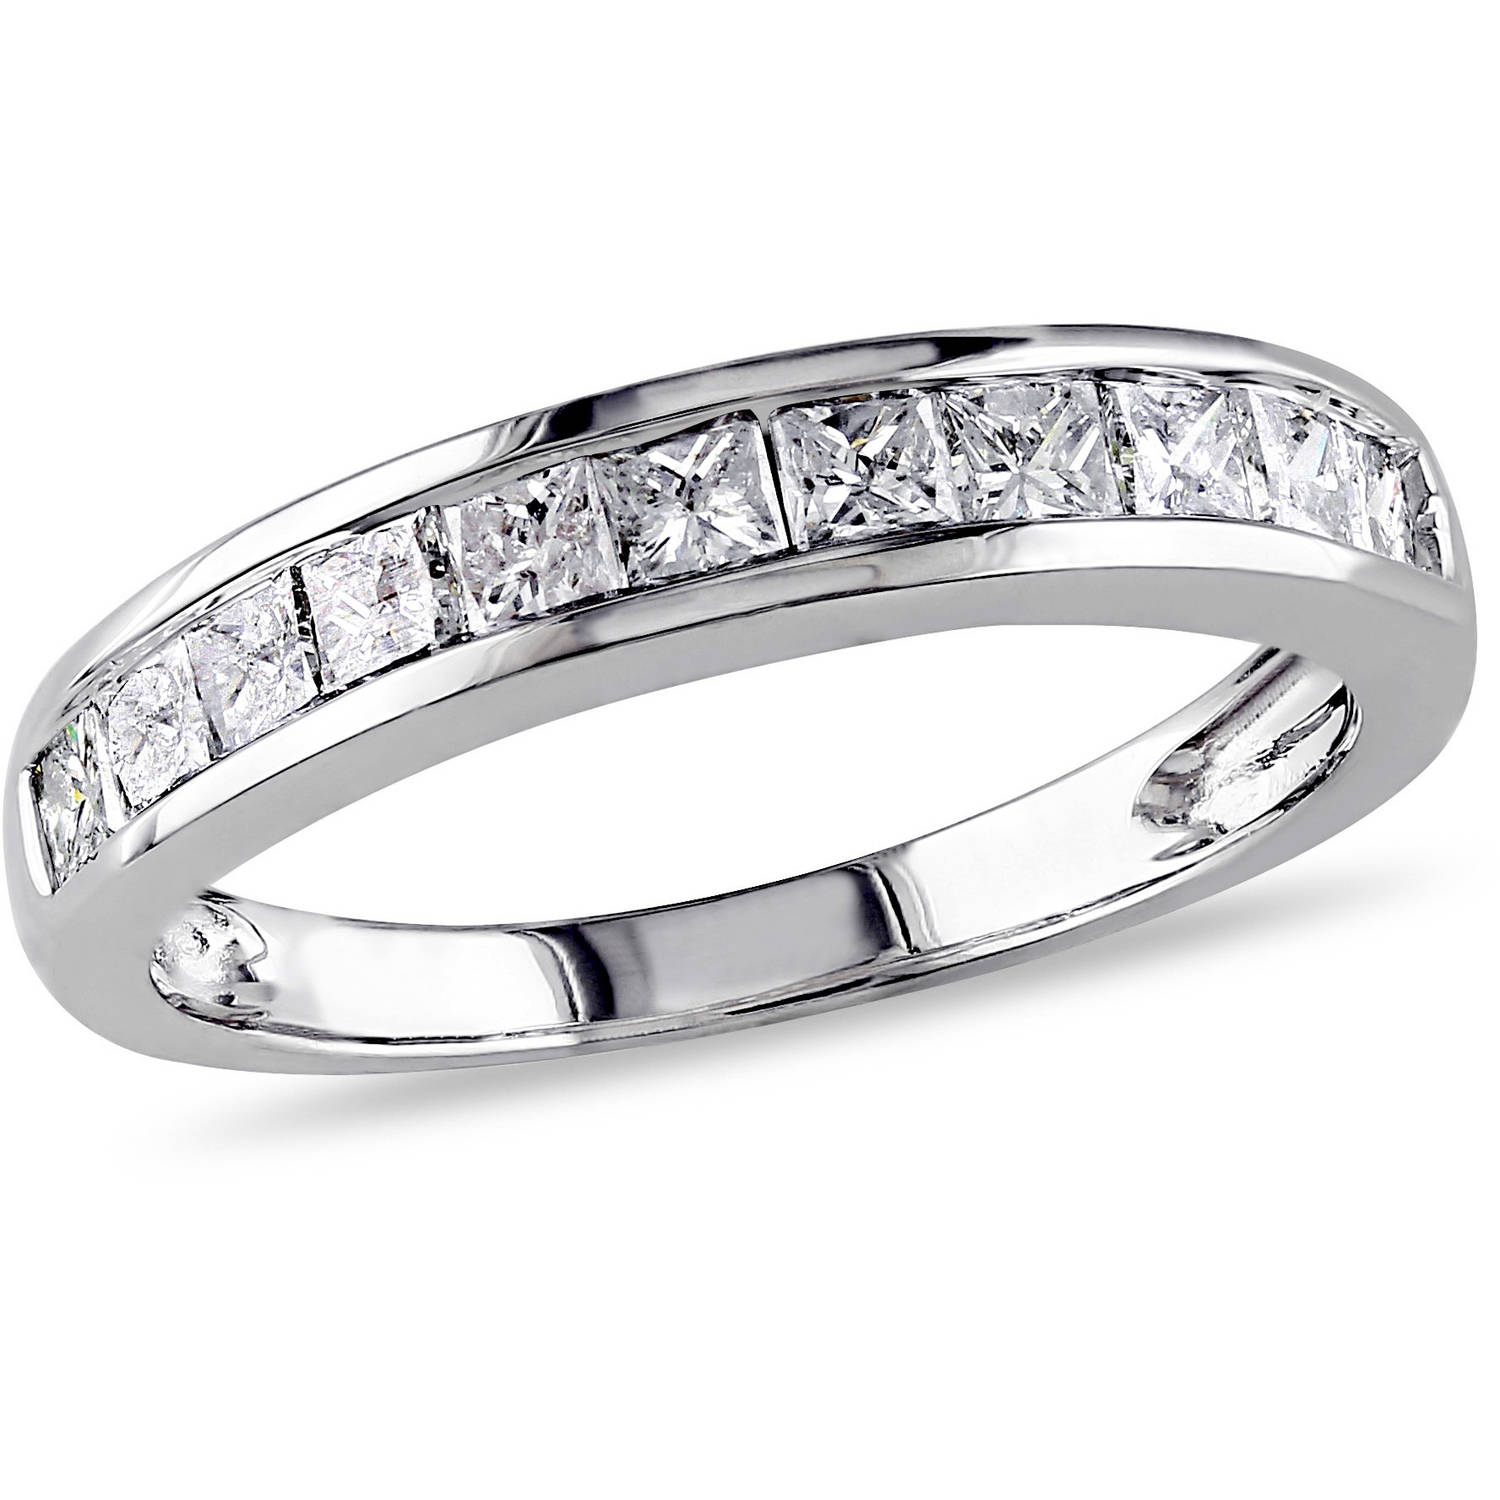 Miabella 3/4 Carat T.W. Princess-Cut Diamond 14kt White Gold Wedding Band